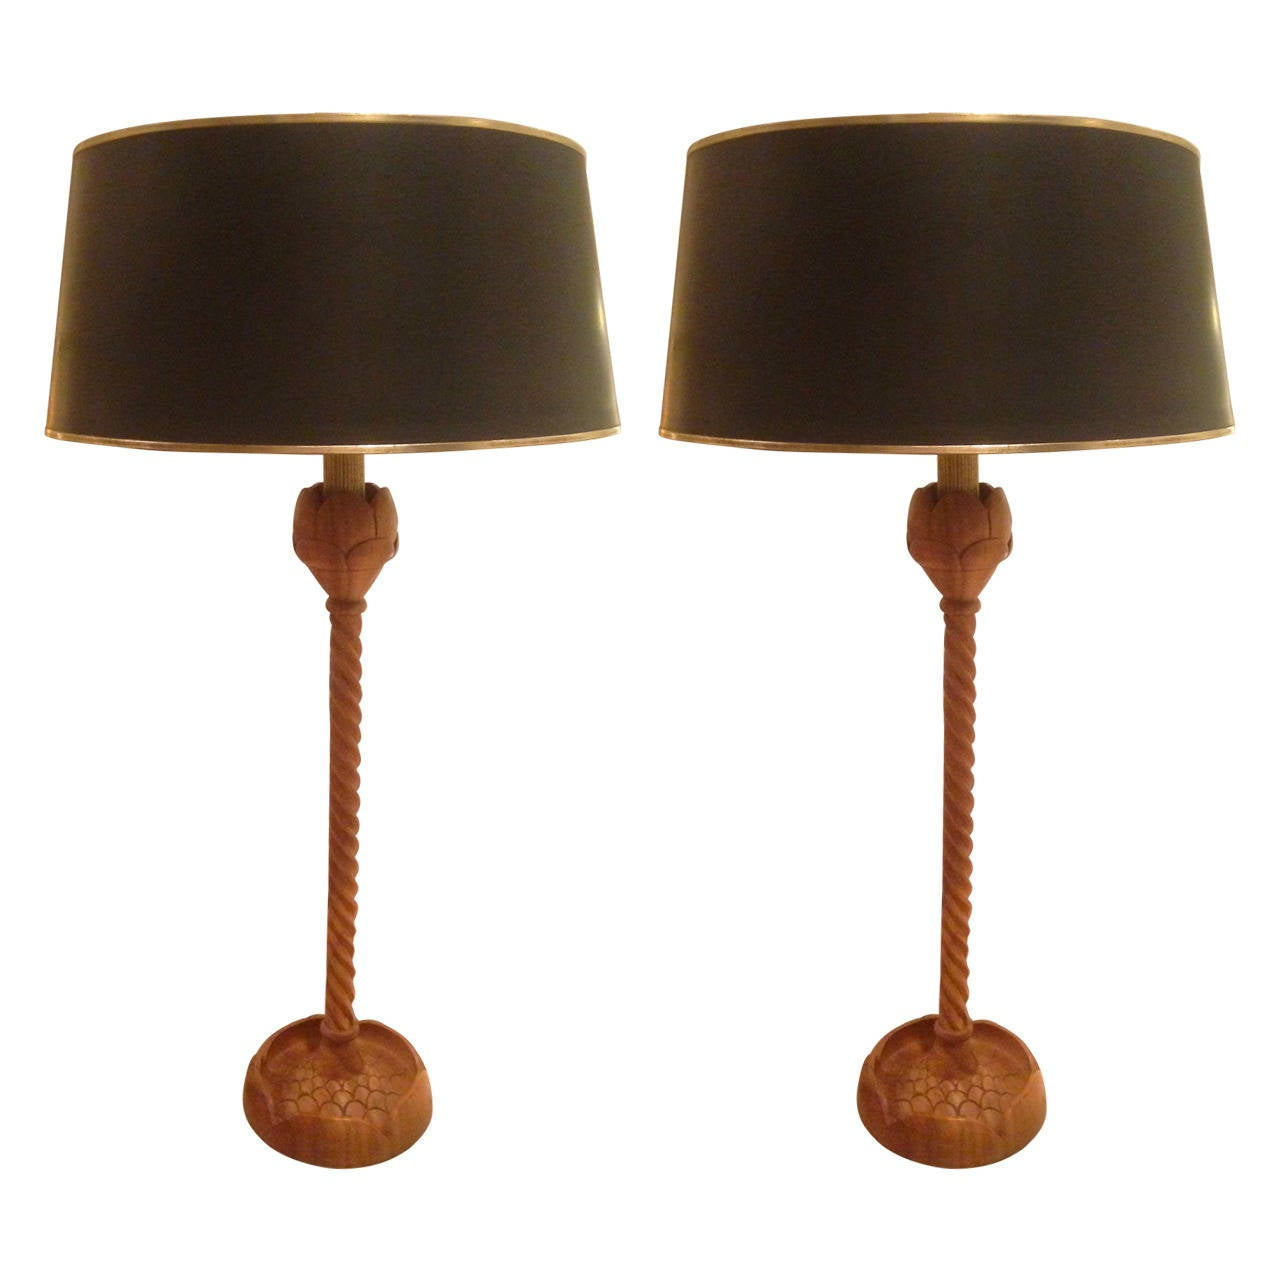 Home Decorator Collections Pair Of Large Scale Table Lamps By Arthur Court At 1stdibs